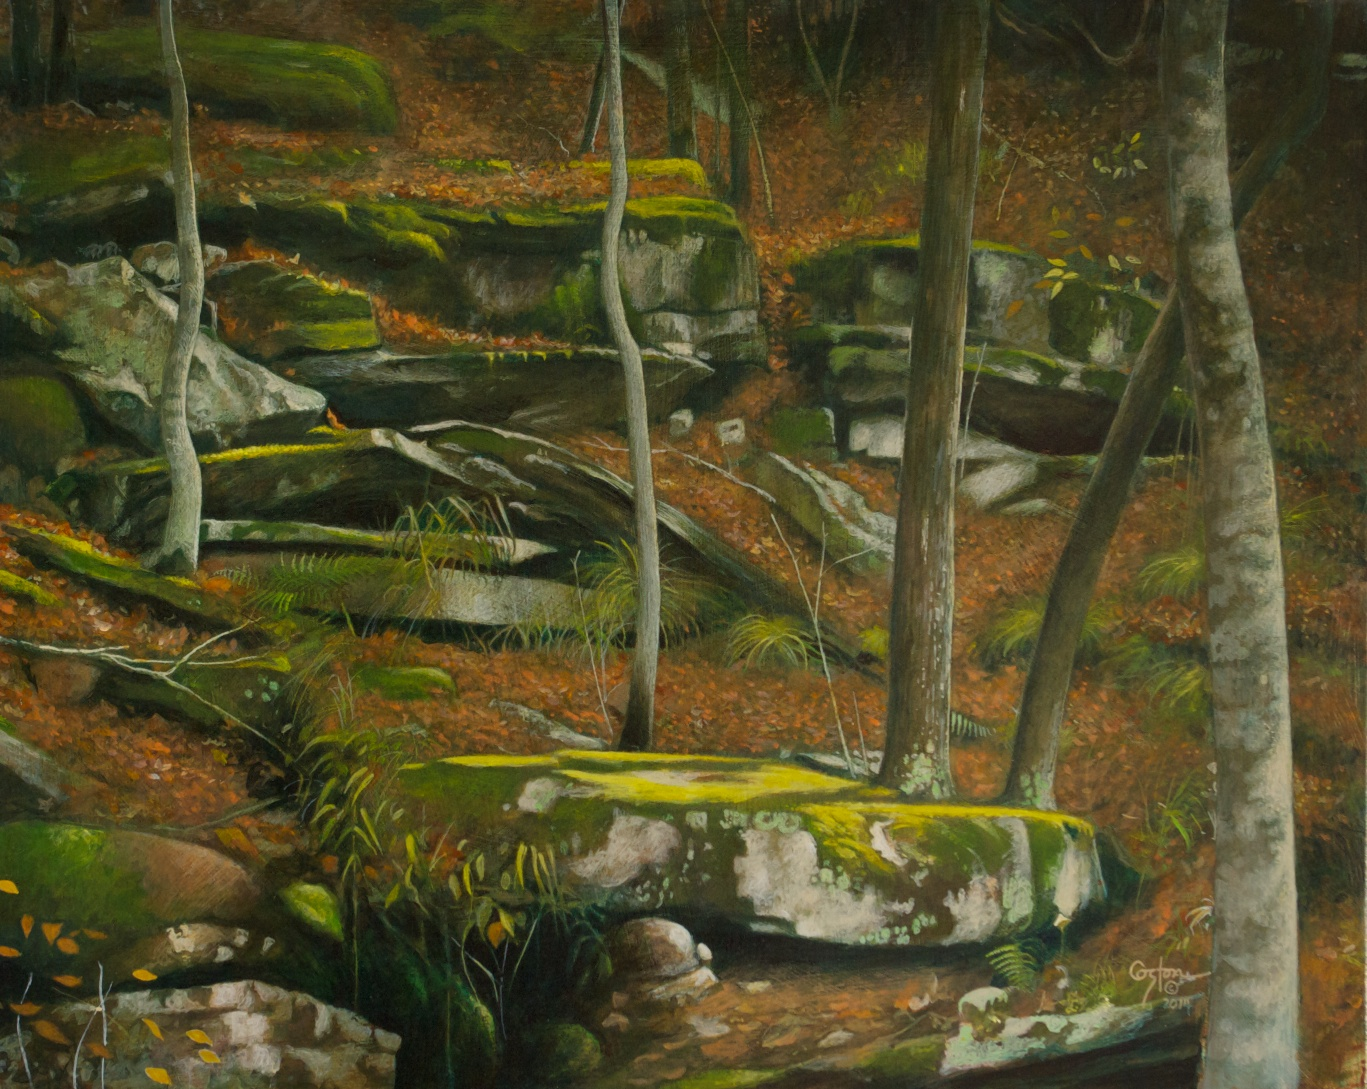 Trees Descending a Staircase, Daniel Coston, 2014